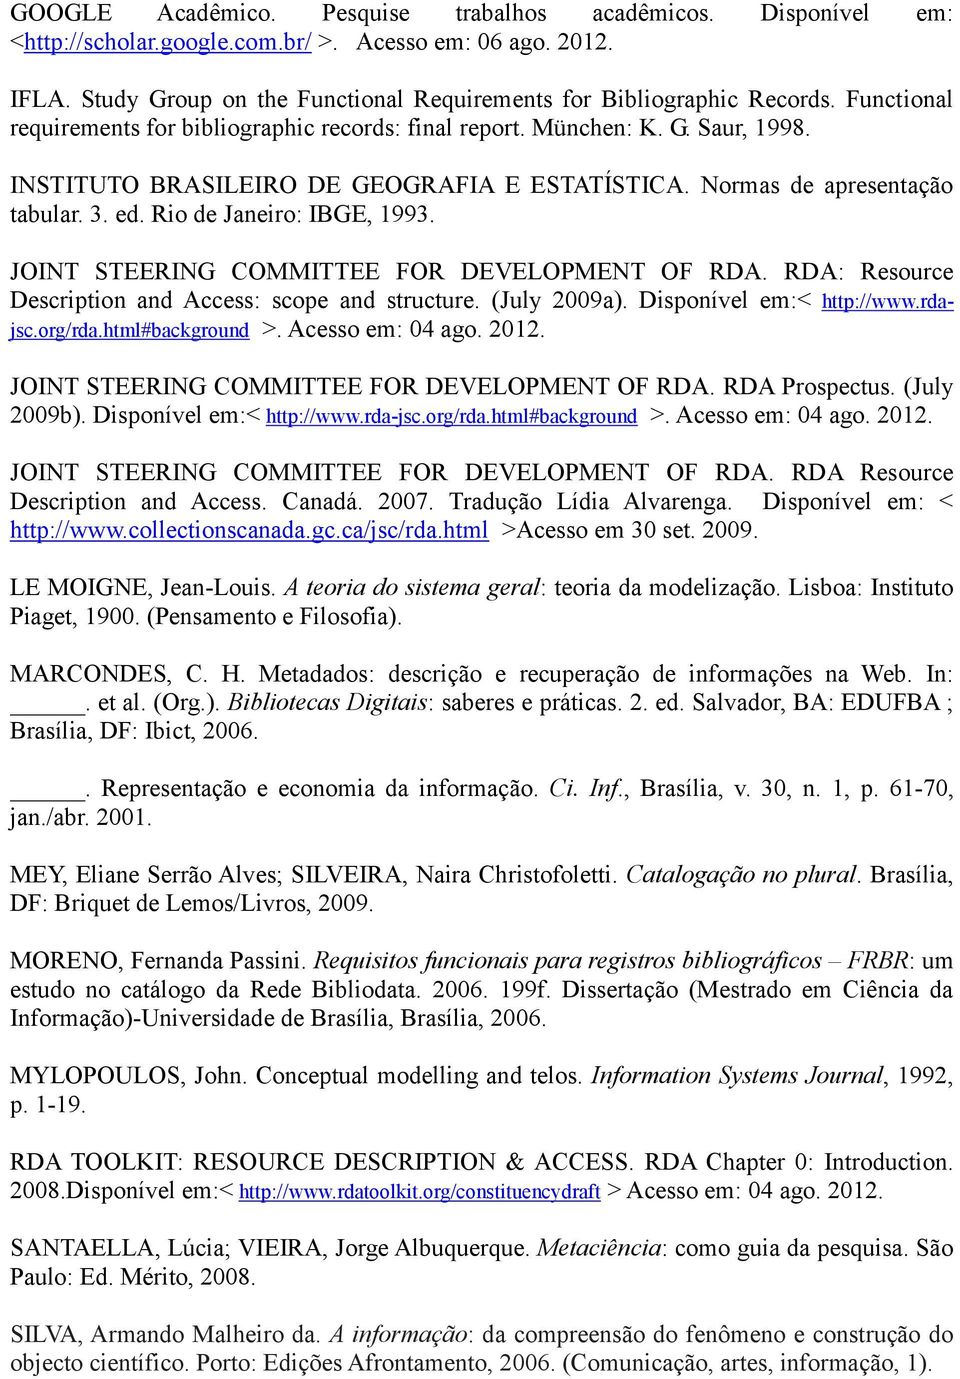 Rio de Janeiro: IBGE, 1993. JOINT STEERING COMMITTEE FOR DEVELOPMENT OF RDA. RDA: Resource Description and Access: scope and structure. (July 2009a). Disponível em:< http://www.rdajsc.org/rda.